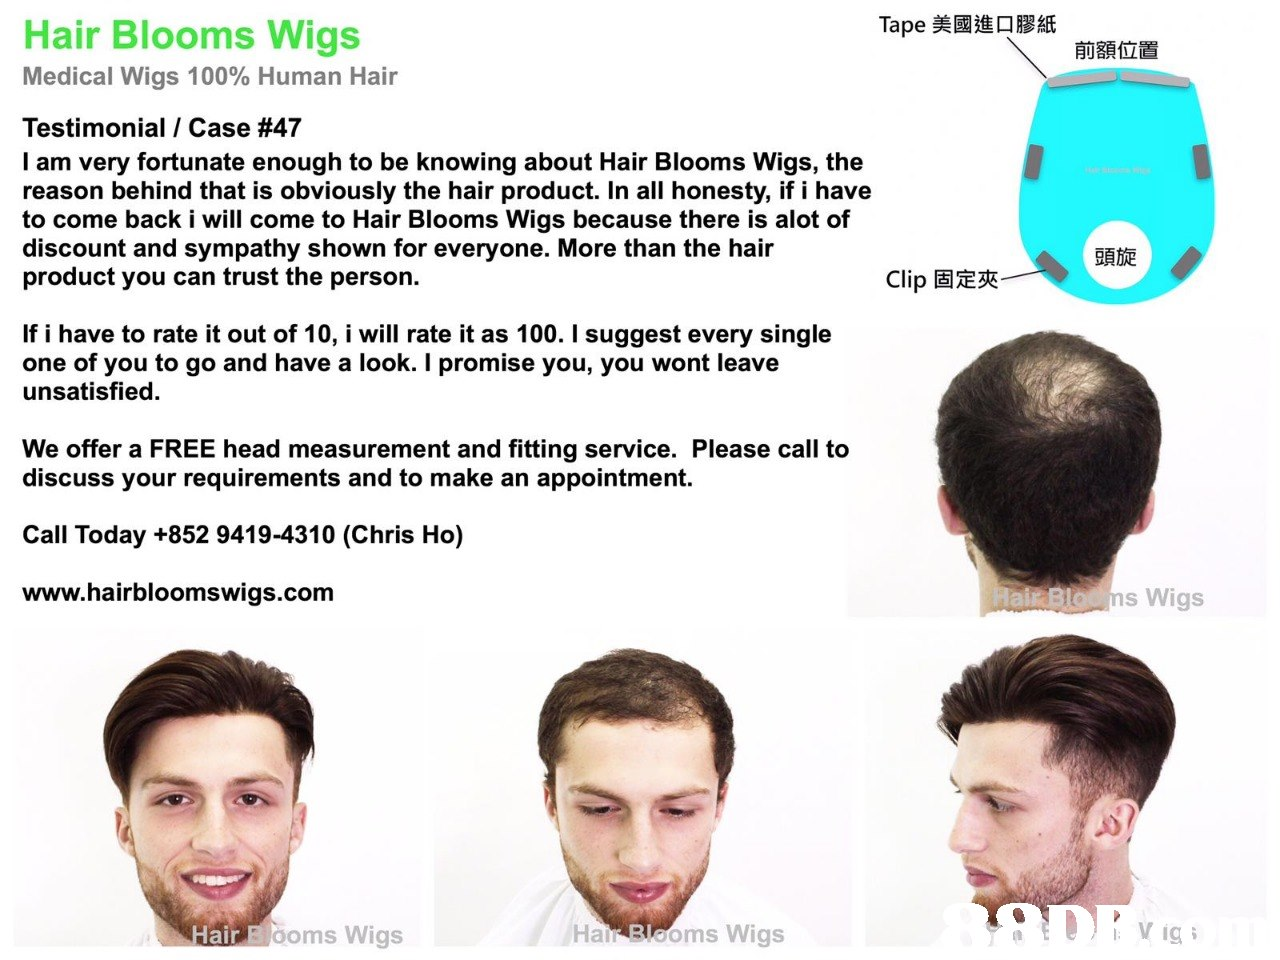 Tape美國進口膠紙 Hair Blooms Wigs 前額位置 Medical Wigs 100% Human Hair Testimonial / Case #47 I am very fortunate enough to be knowing about Hair Blooms Wigs, the reason behind that is obviously the hair product. In all honesty, if i have to come back i will come to Hair Blooms Wigs because there is alot of discount and sympathy shown for everyone. More than the hair product you can trust the person. 頭旋 Clip固定夾 If i have to rate it out of 10, i will rate it as 100. I suggest every single one of you to go and have a look. I promise you, you wont leave unsatisfied. We offer a FREE head measurement and fitting service. Please call to discuss your requirements and to make an appointment. Call Today +852 9419-4310 (Chris Ho) www.hairbloomswigs.com rBlo ms Wigs ai Halr Blooms Wigs HairEO ooms Wigs  Face,Facial expression,Nose,Head,Skin